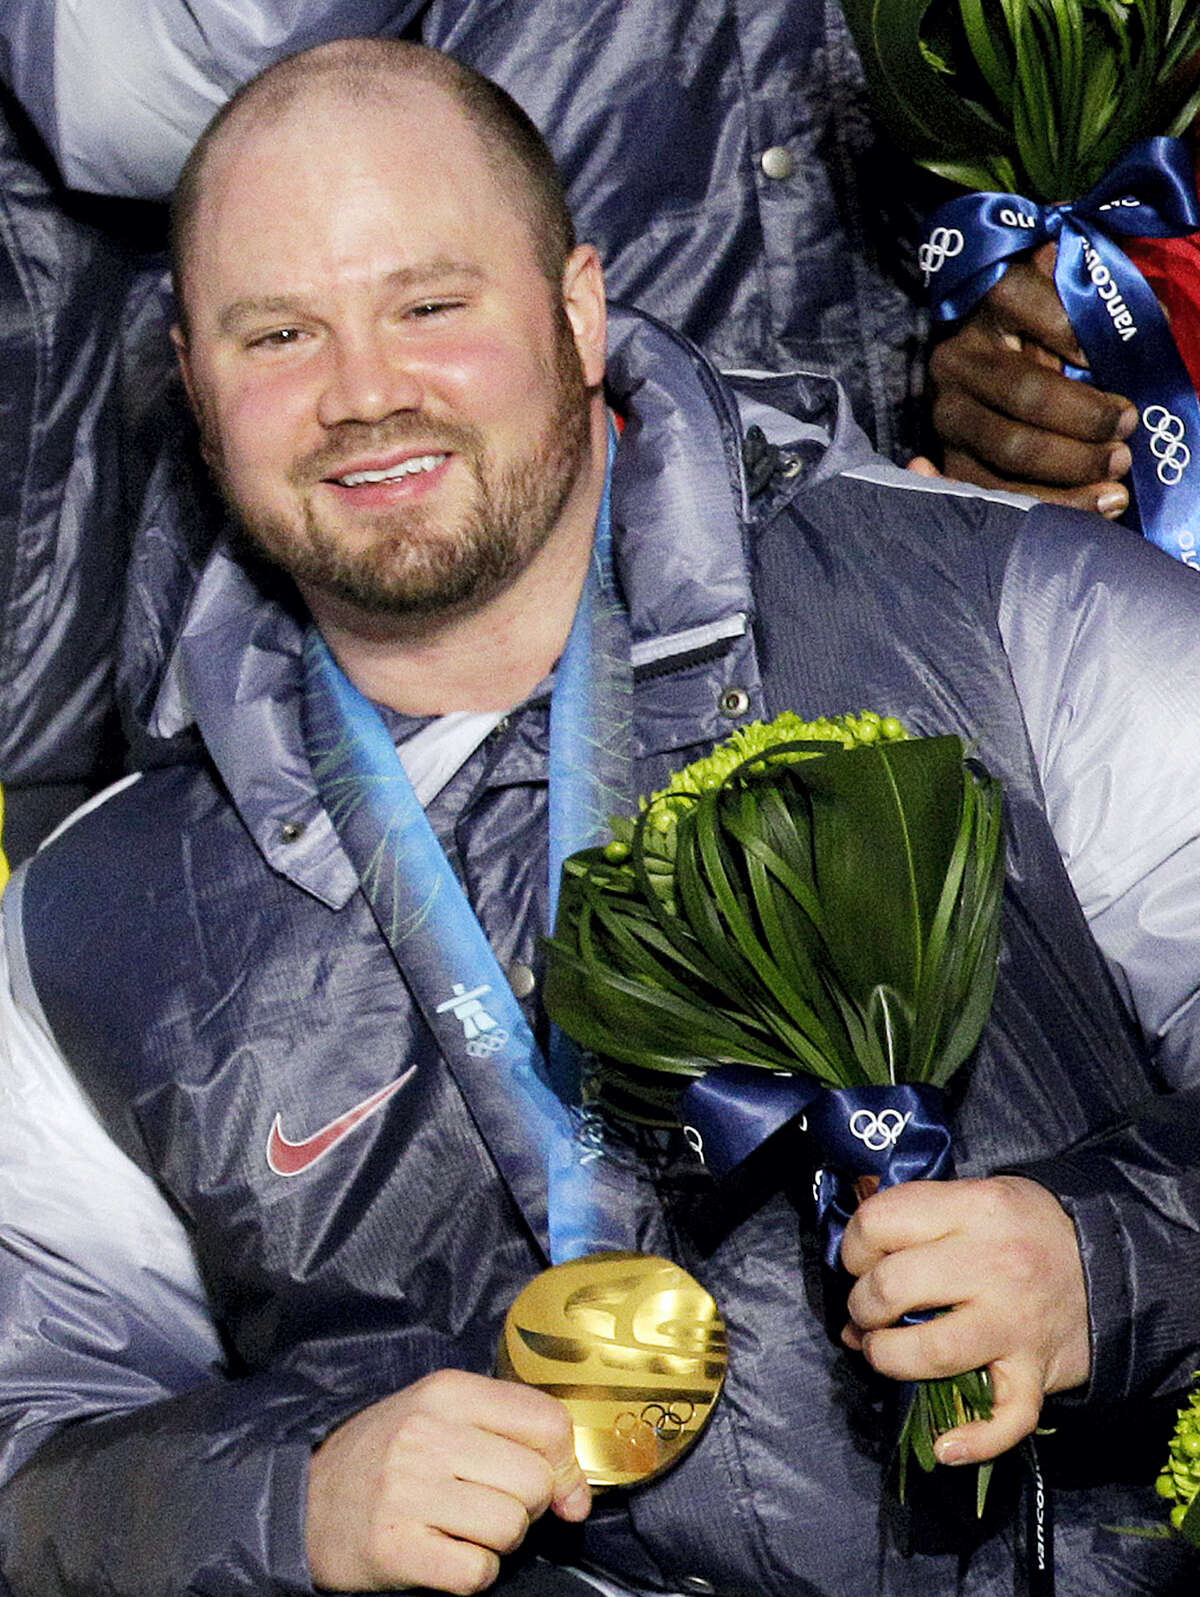 Steven Holcomb poses with his gold medal in the men's four-man bobsled during the medal ceremony at the Vancouver 2010 Olympics in Whistler, British Columbia.